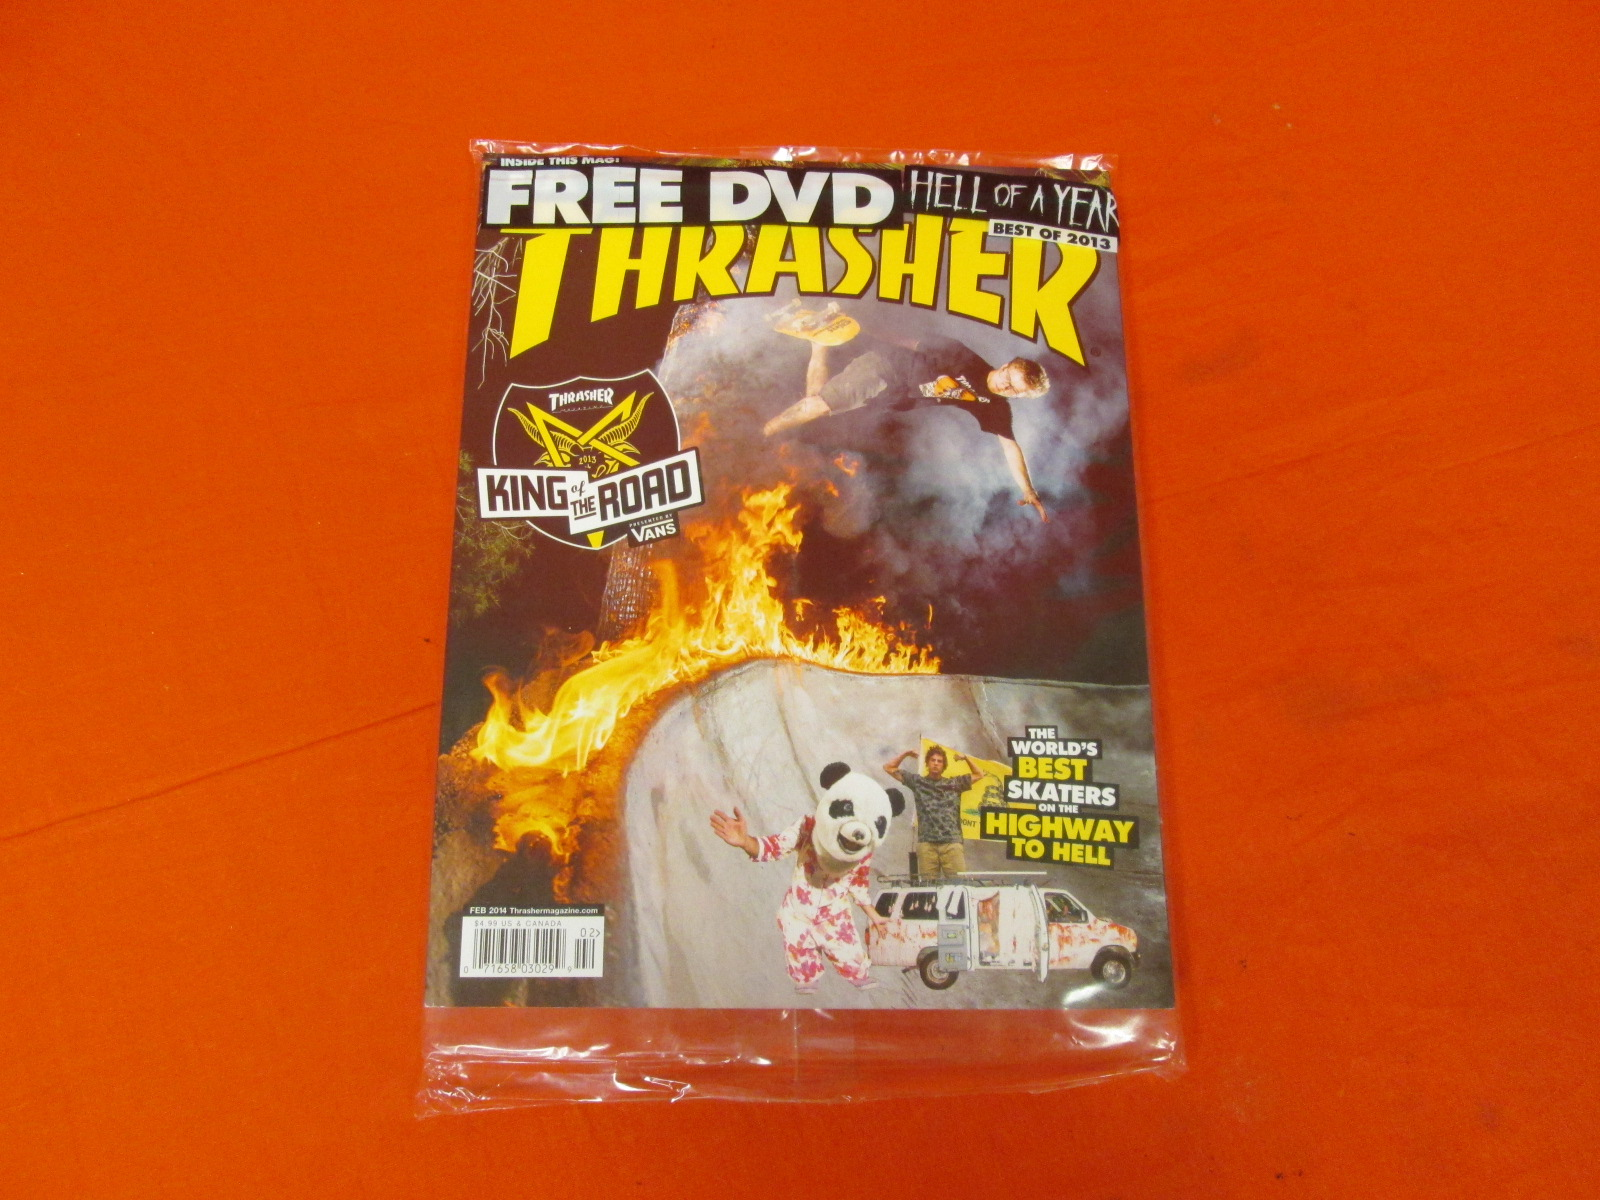 Thrasher Magazine Best Of 2013 With Free DVD Feb 2014